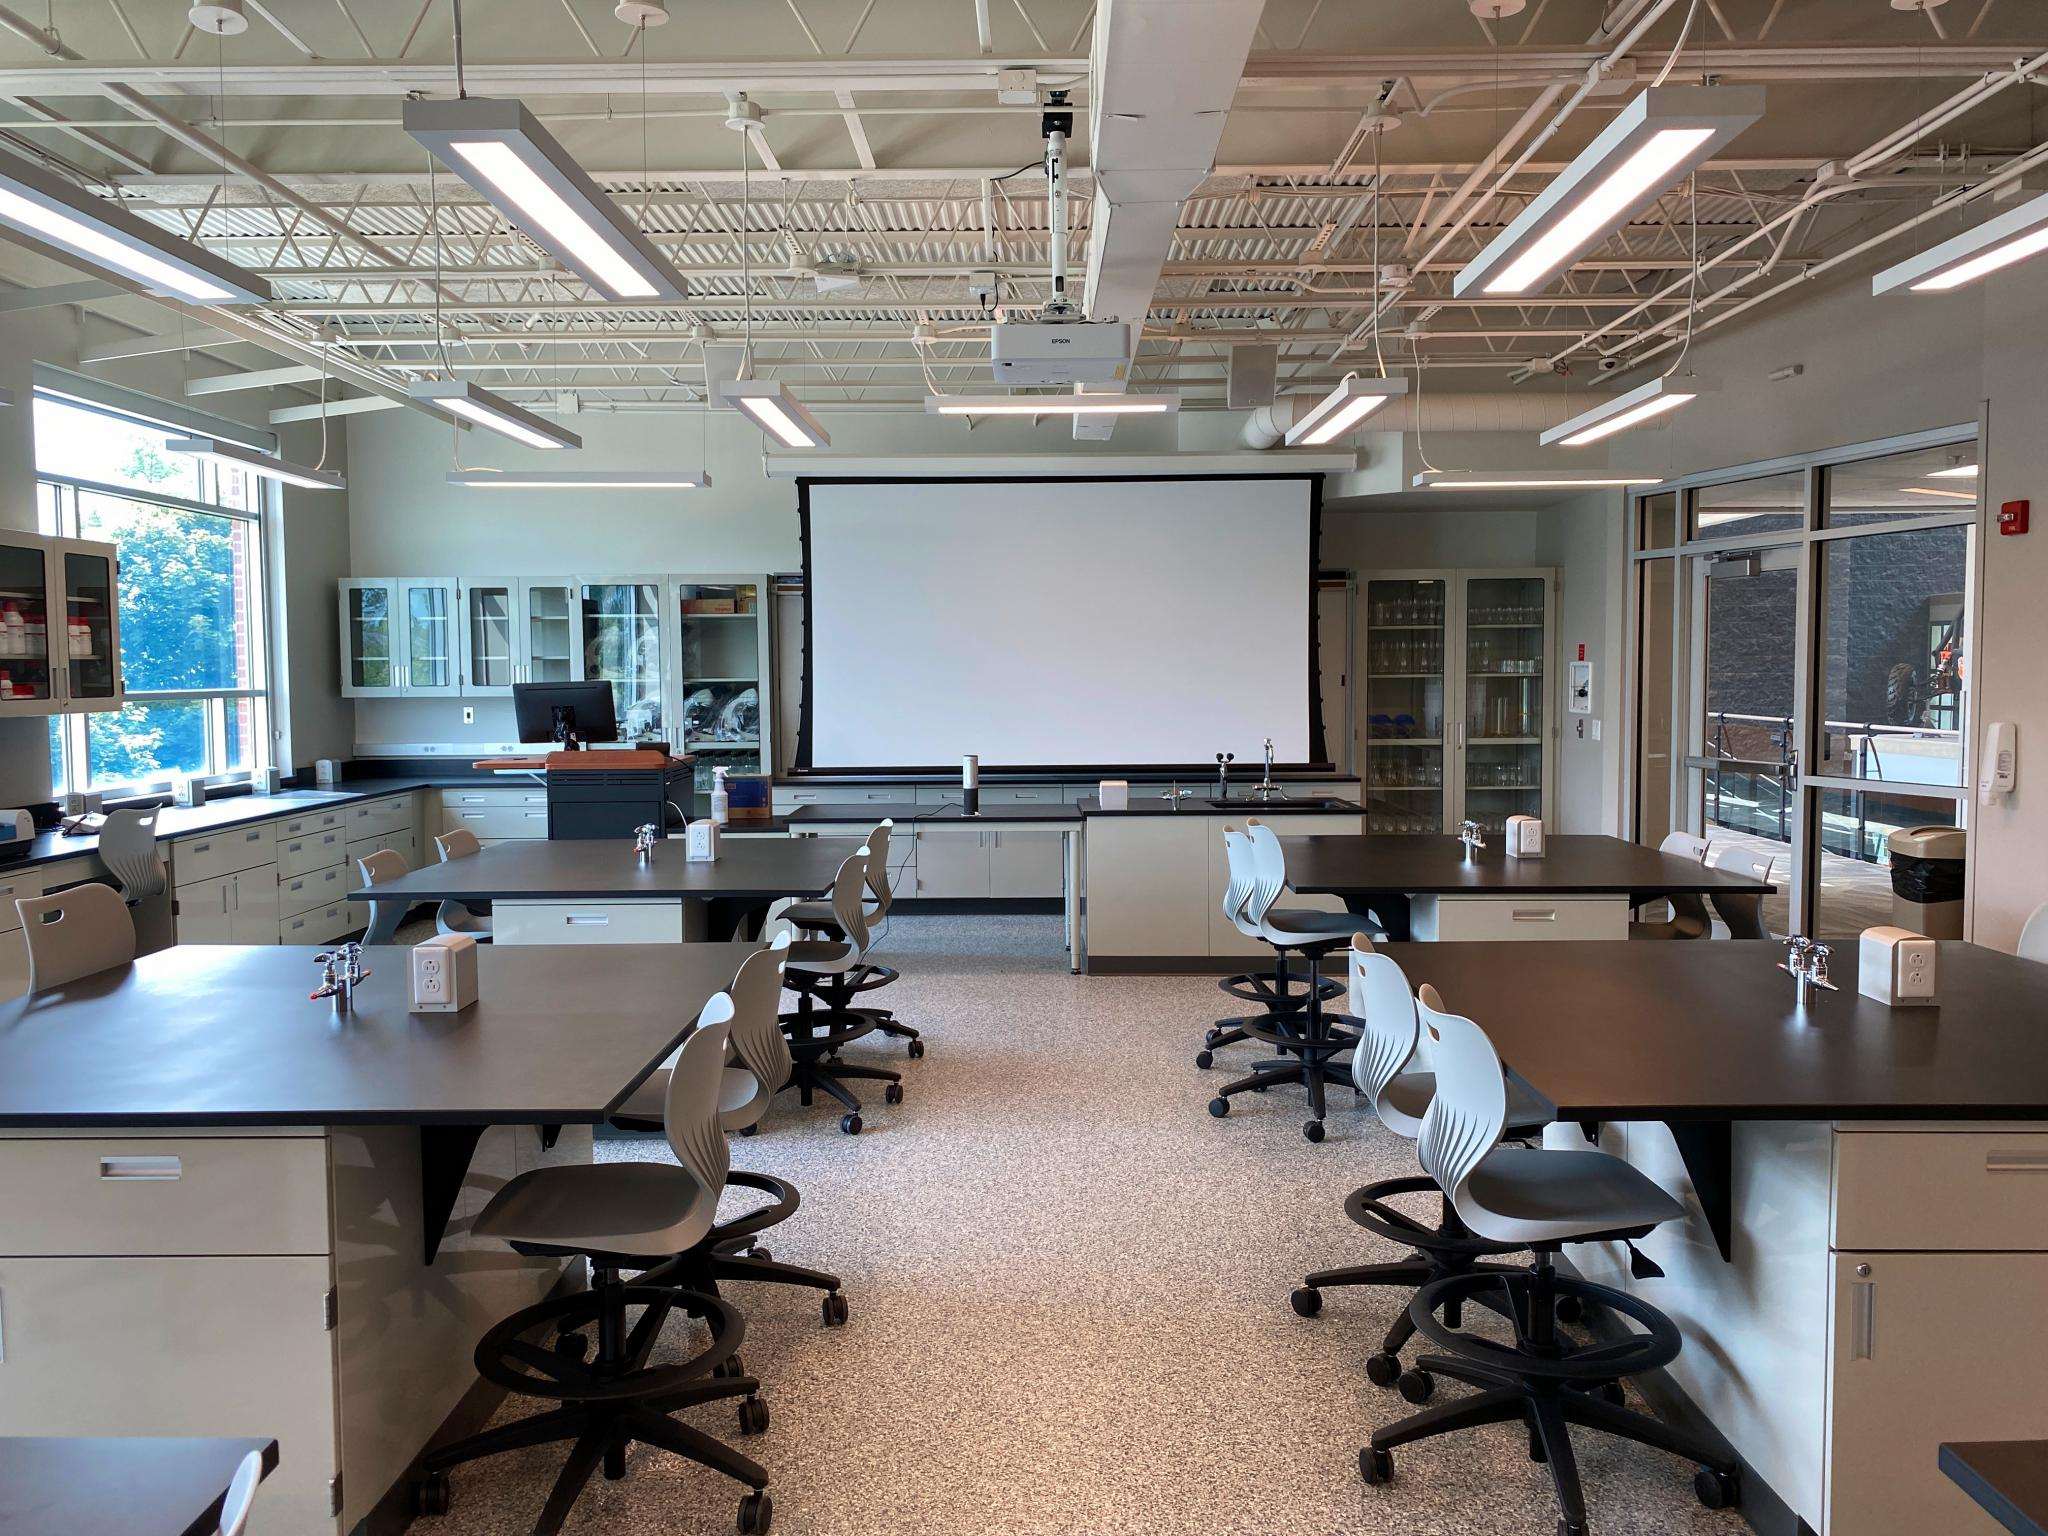 image of science lab with overhead project screen